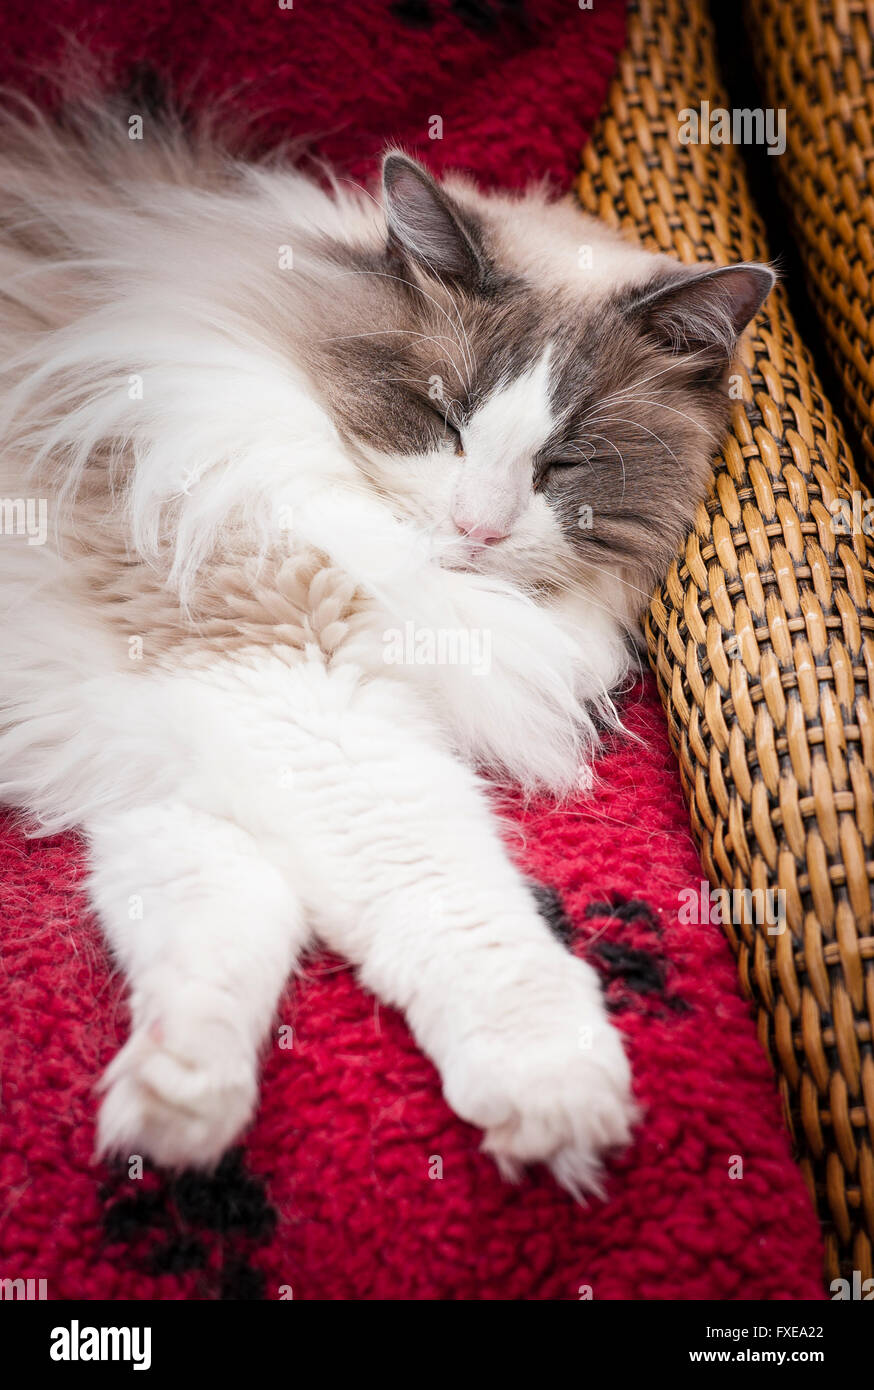 A young Ragdoll cat comfortable on a conservatory cane chair and red cushion - Stock Image